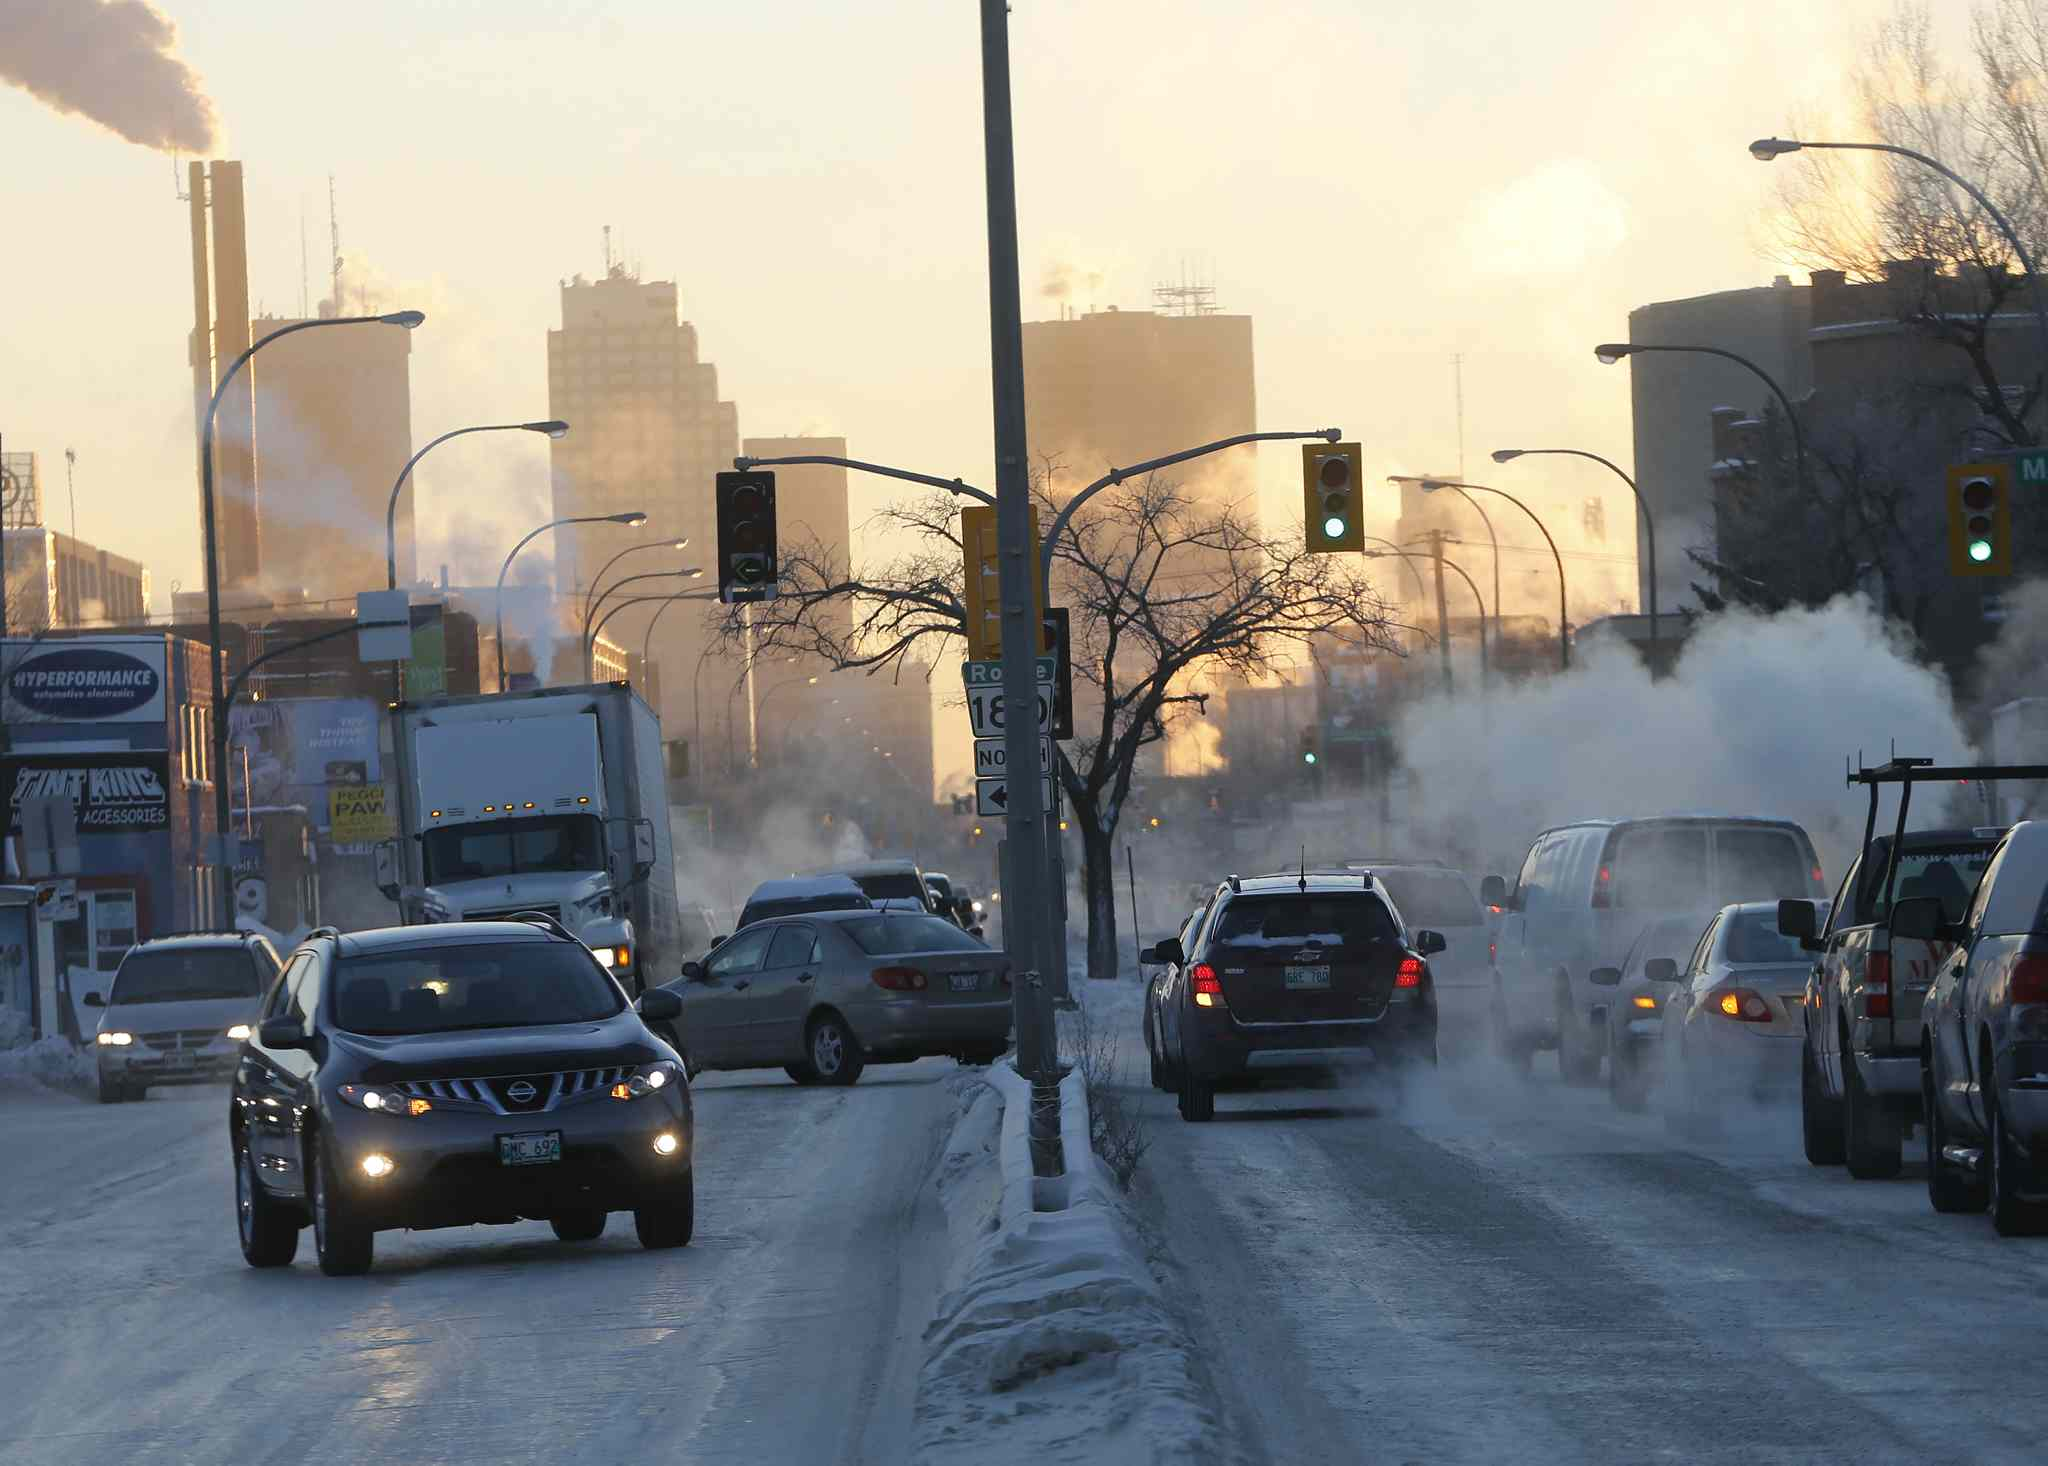 Motorists are advised to prepare for slow going due to extreme cold, ice fog , and icy road conditions this morning.